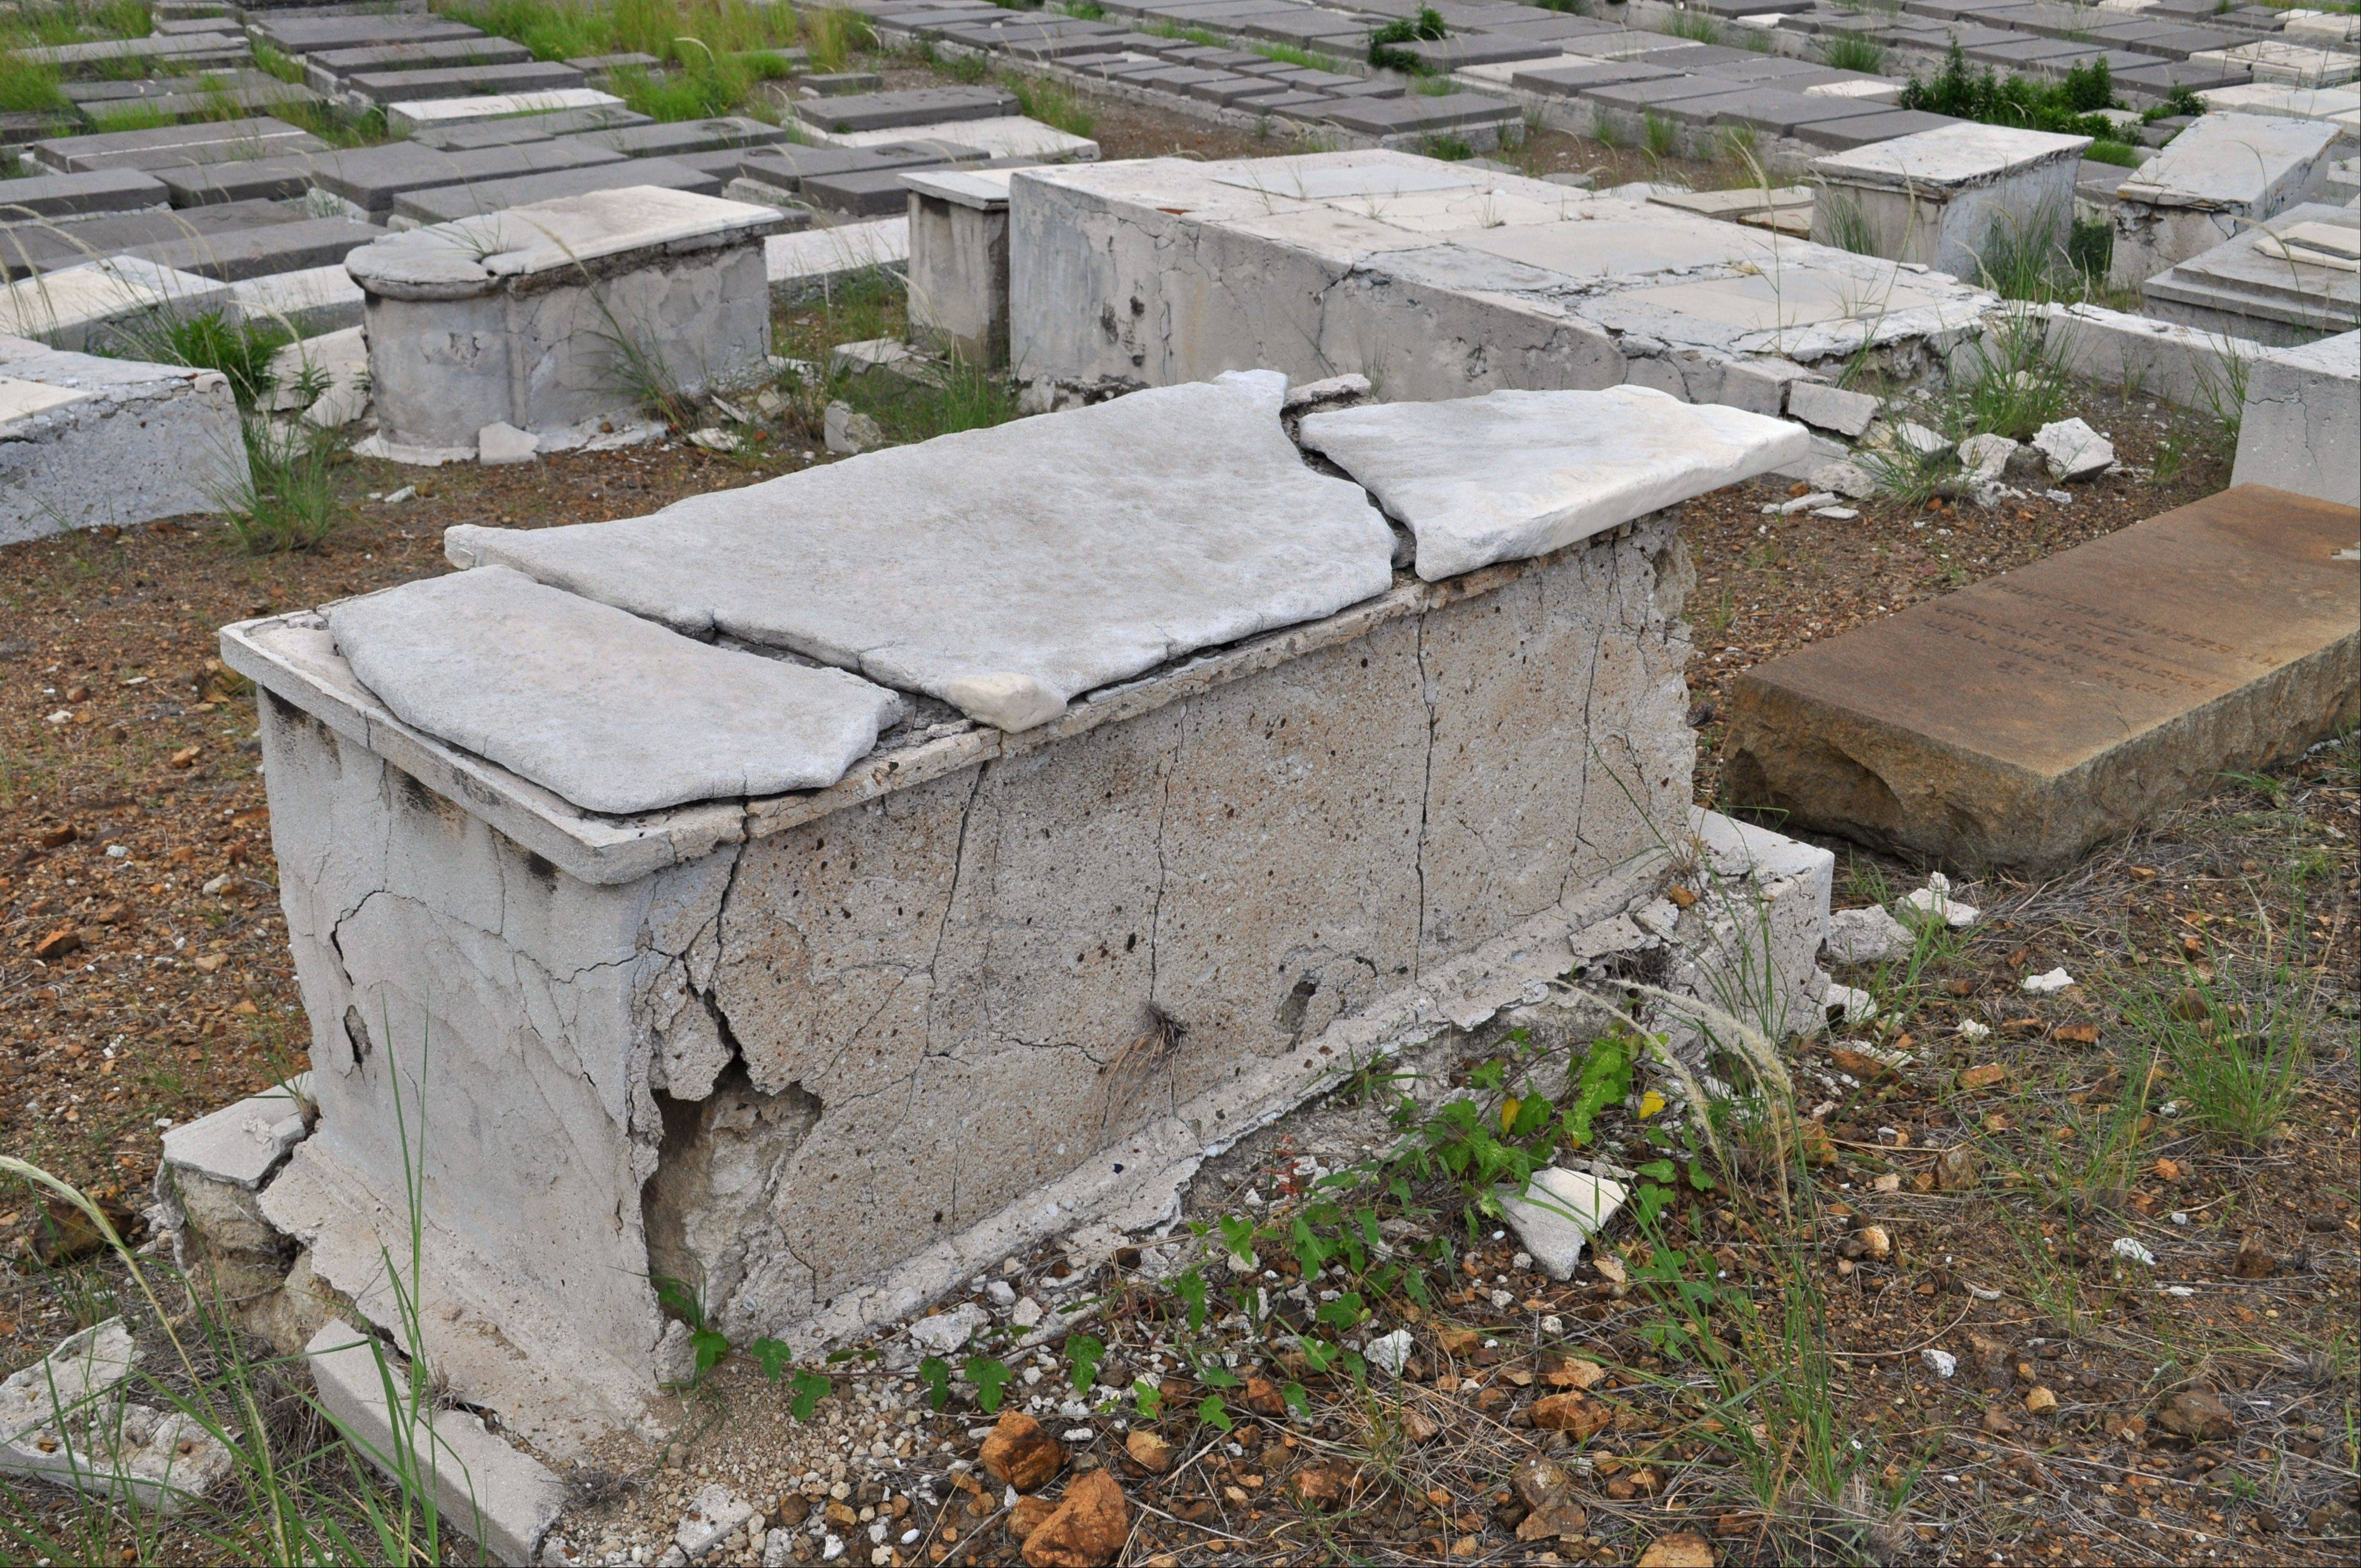 A crumbling tomb stands in the Beth Haim cemetery in Blenheim on the outskirts of Willemstad, Curacao.